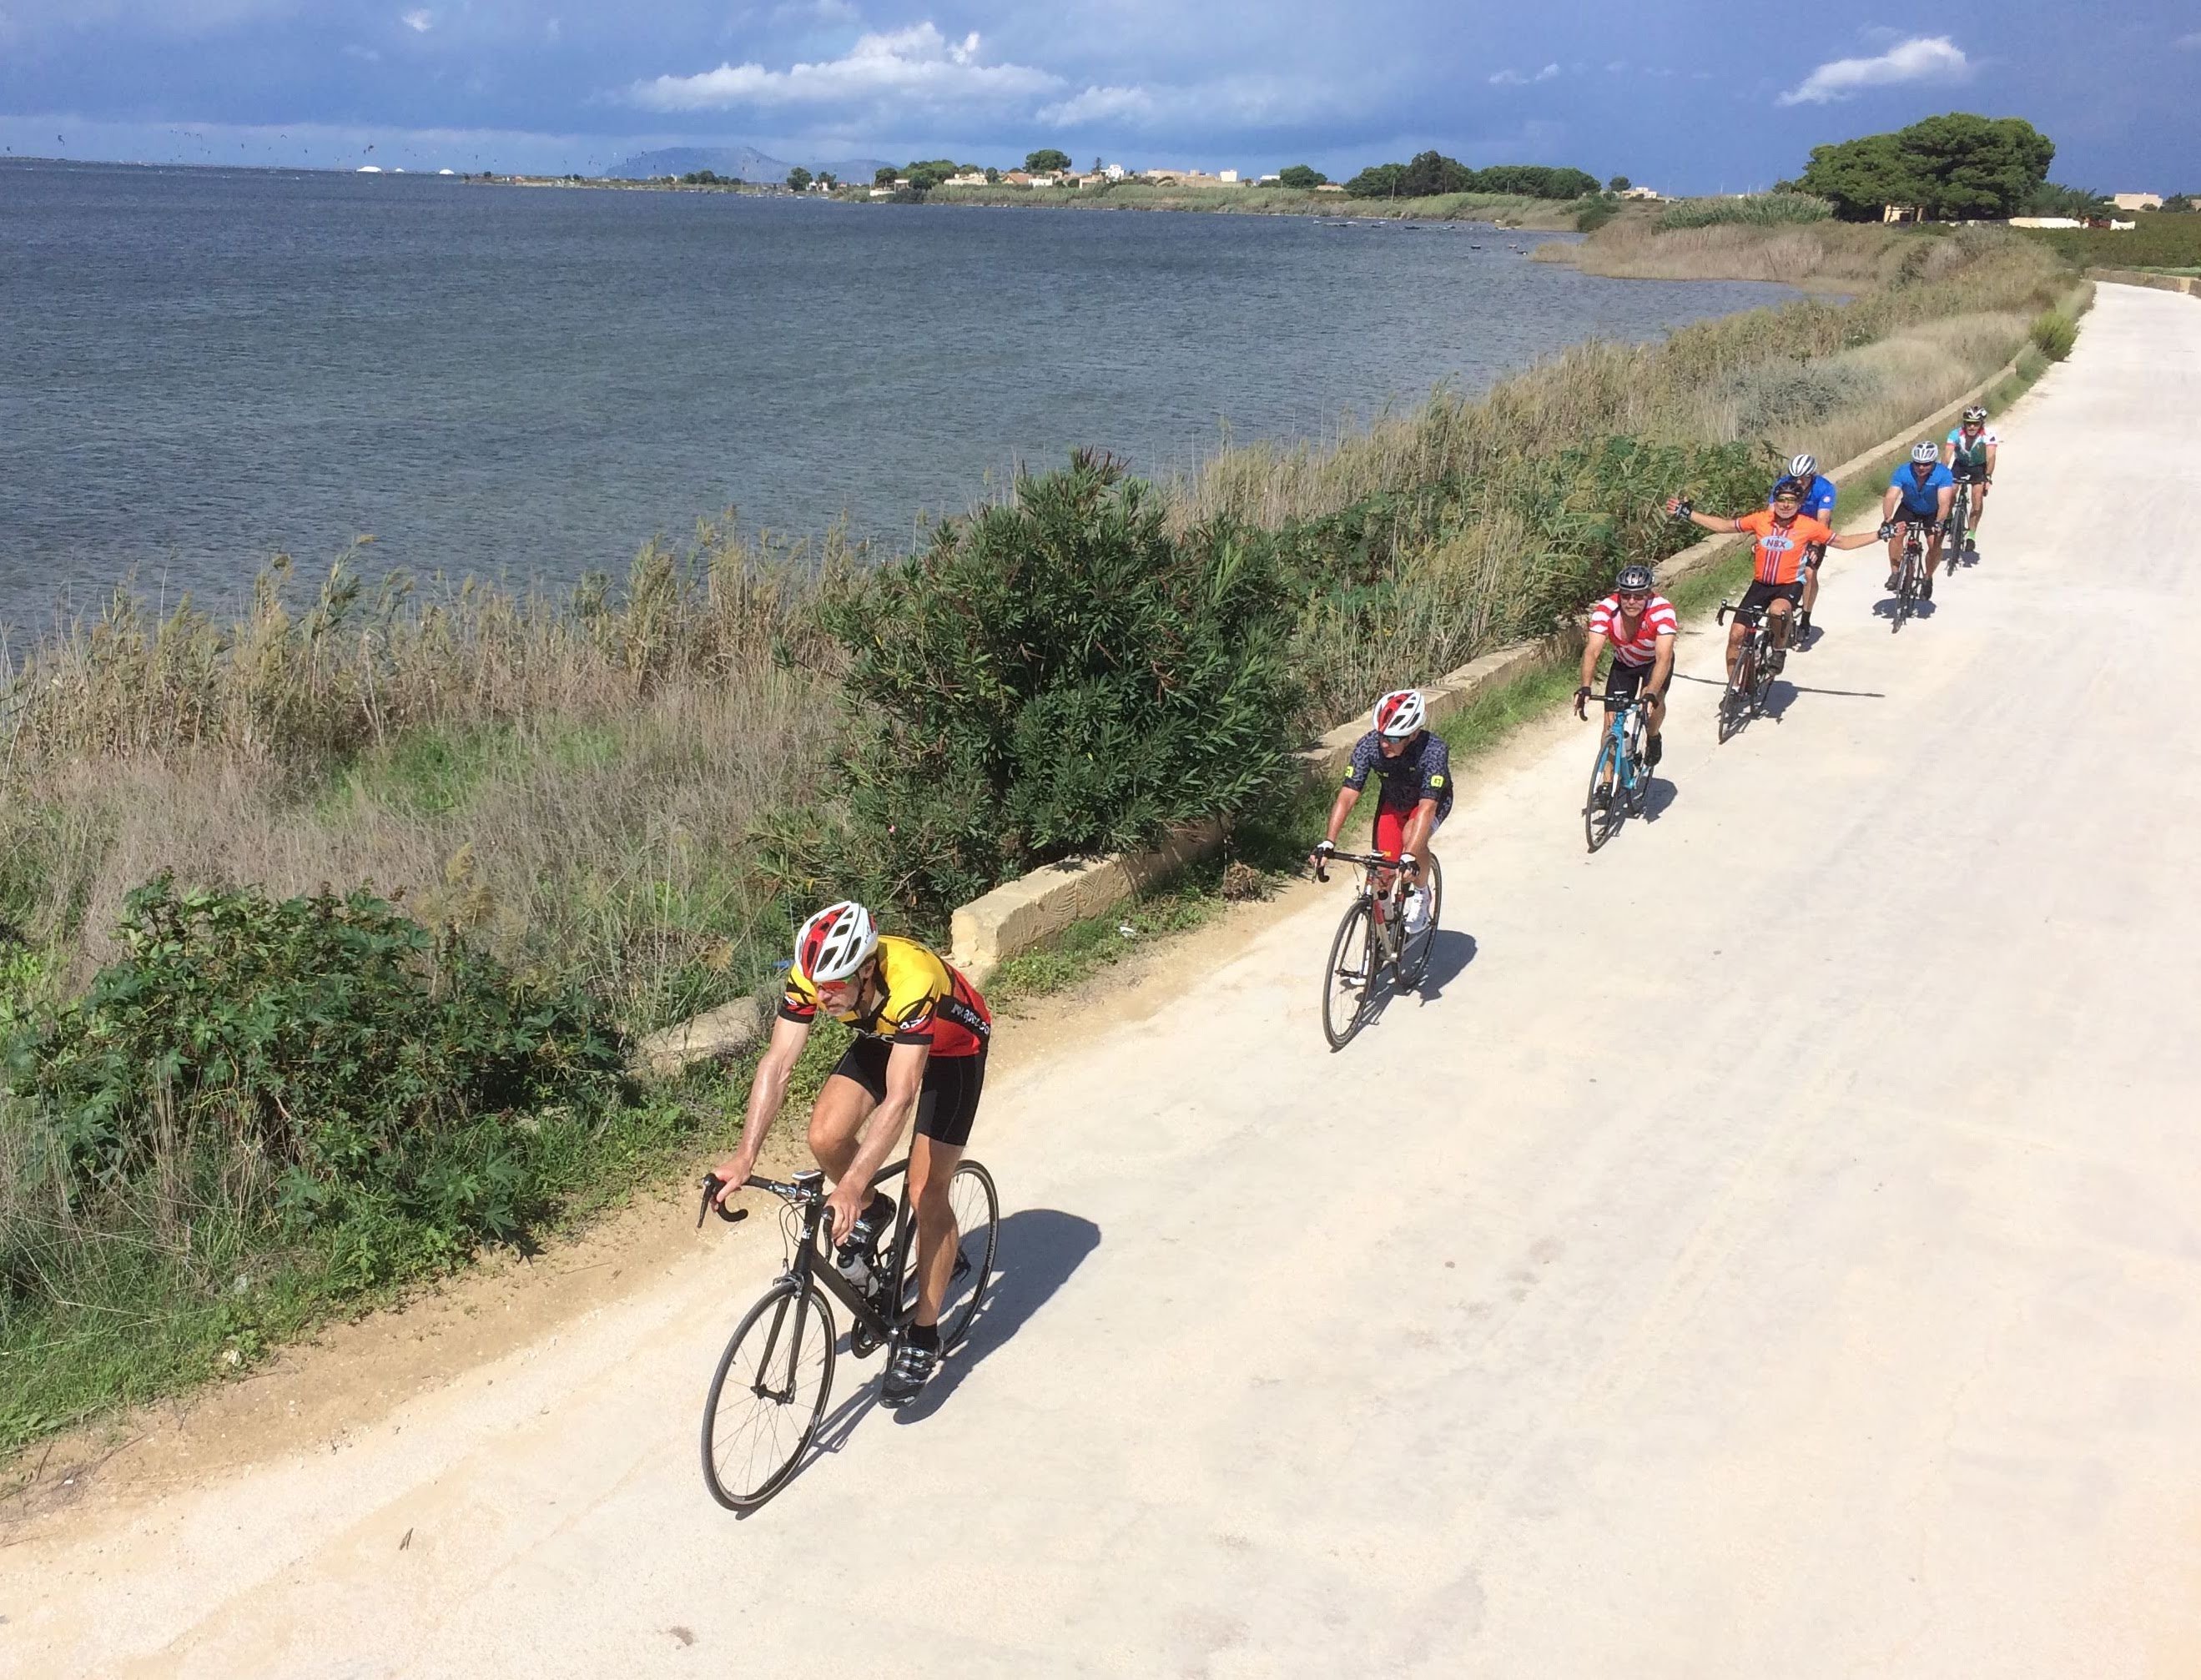 Bicycle tour along the Sicilian coastline